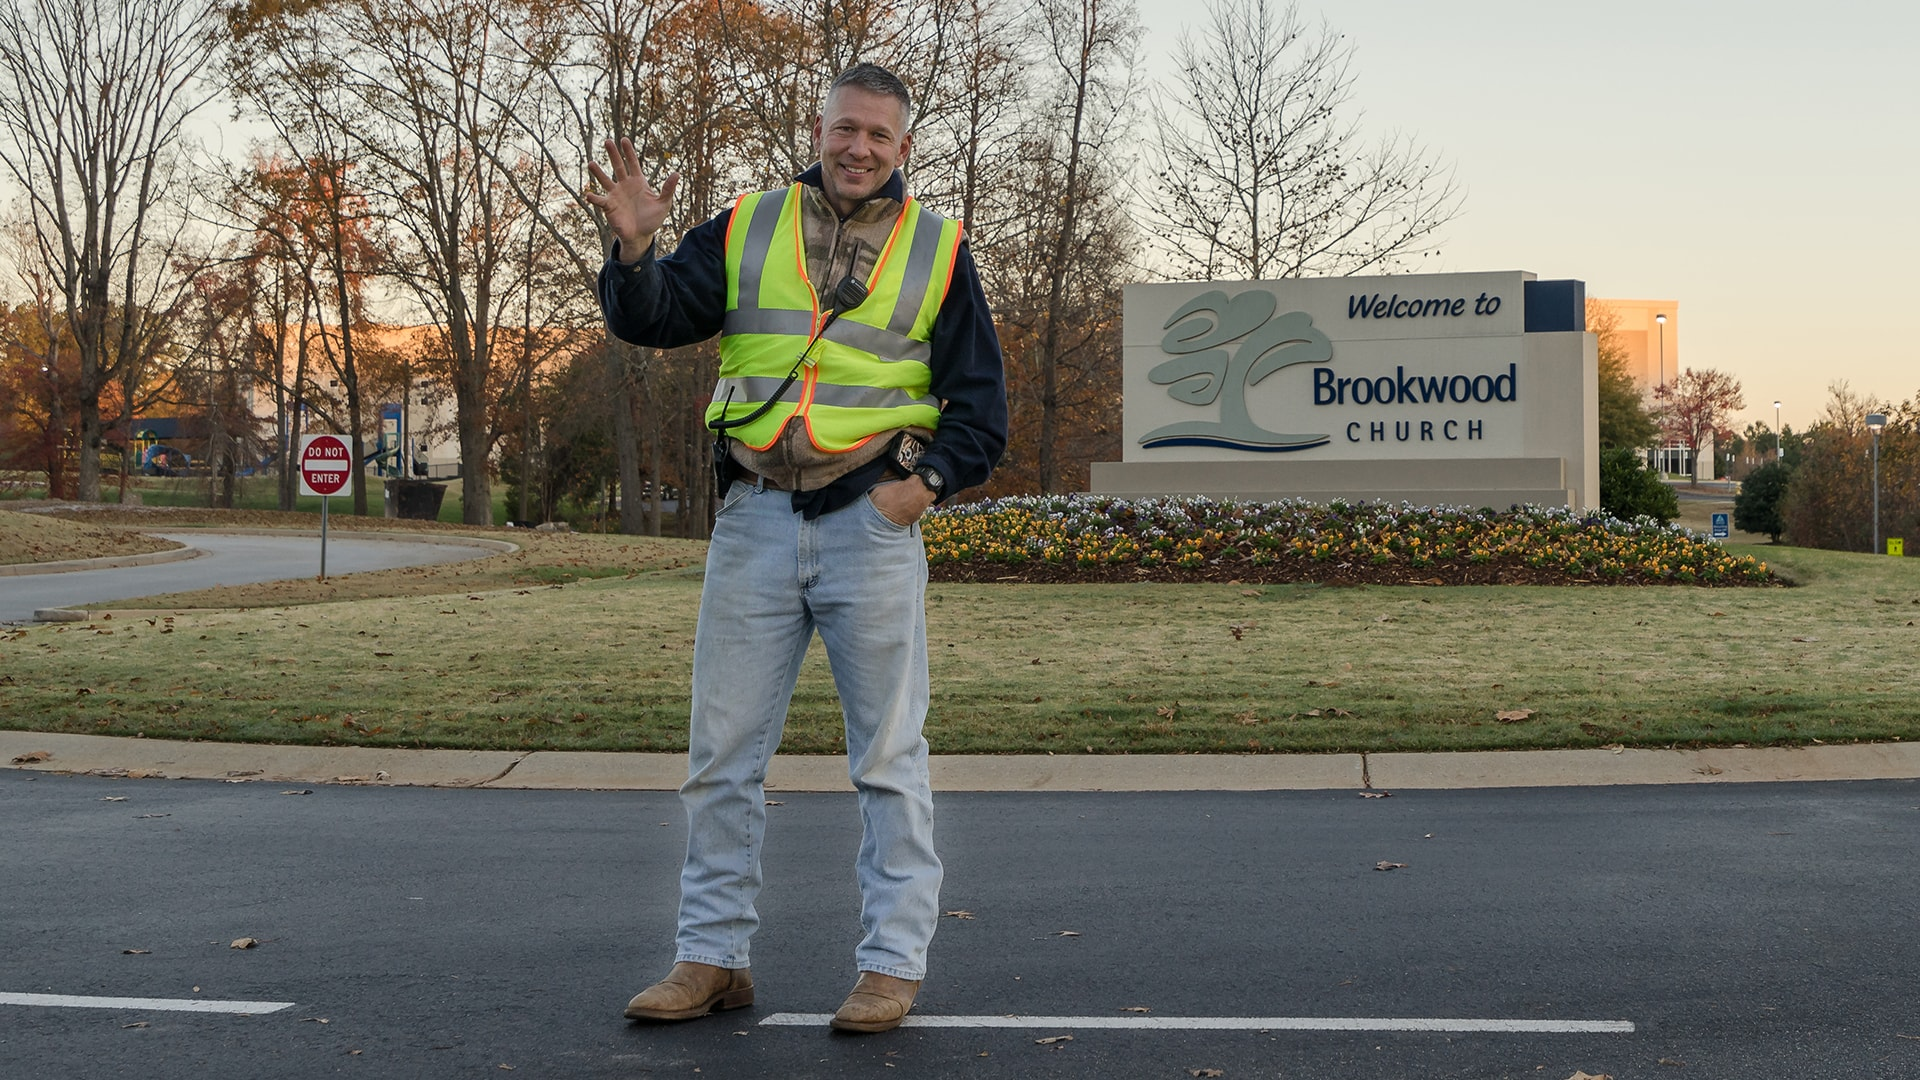 A member of the Brookwood Church Traffic Team smiling and waving.